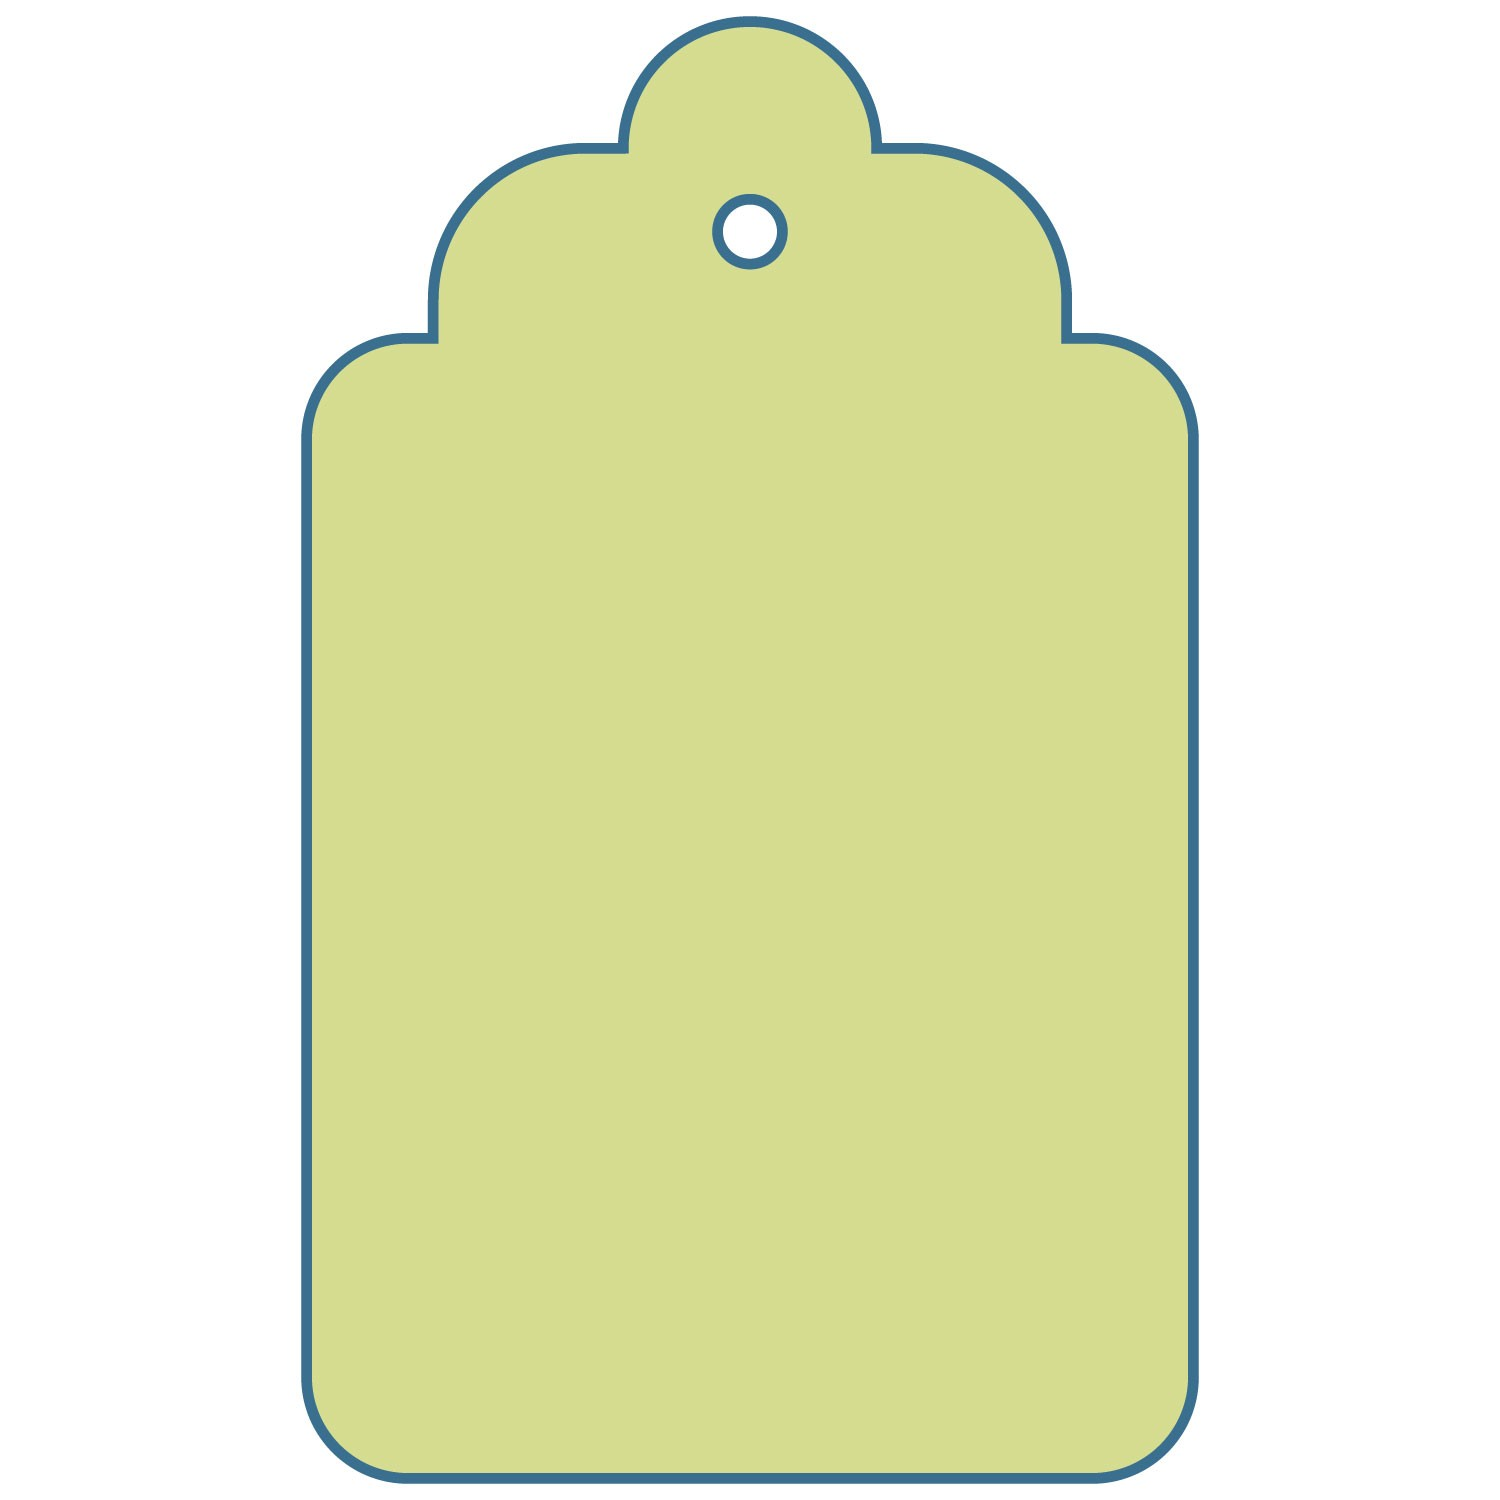 Gift Tag Outline - Cliparts.co